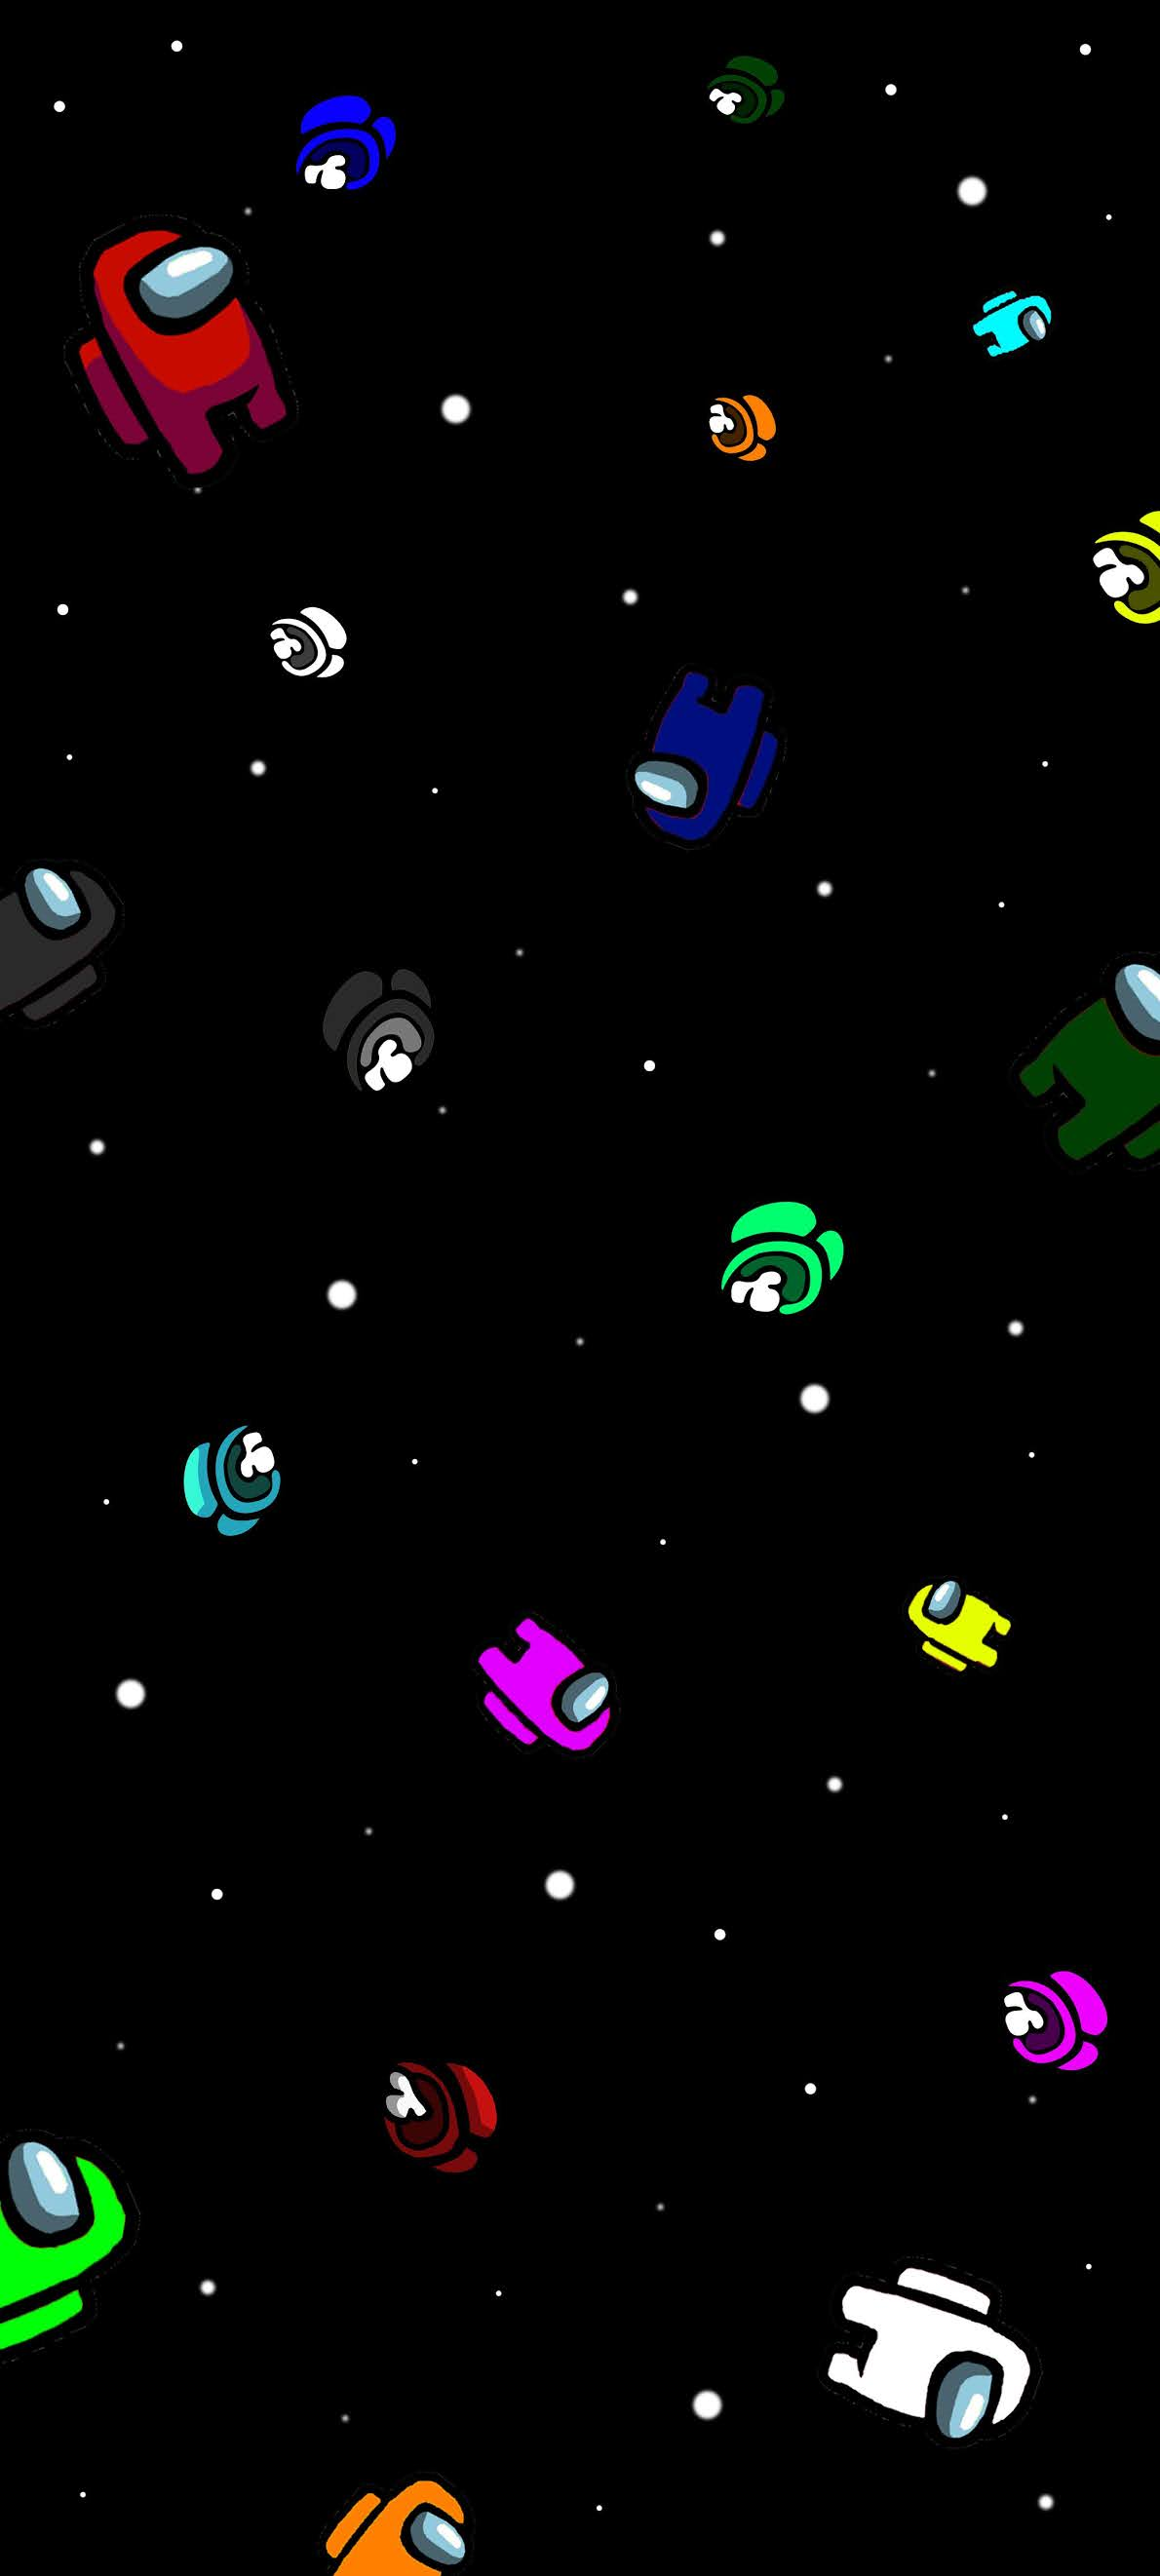 Among Us Space Wallpapers Top Free Among Us Space Backgrounds Wallpaperaccess